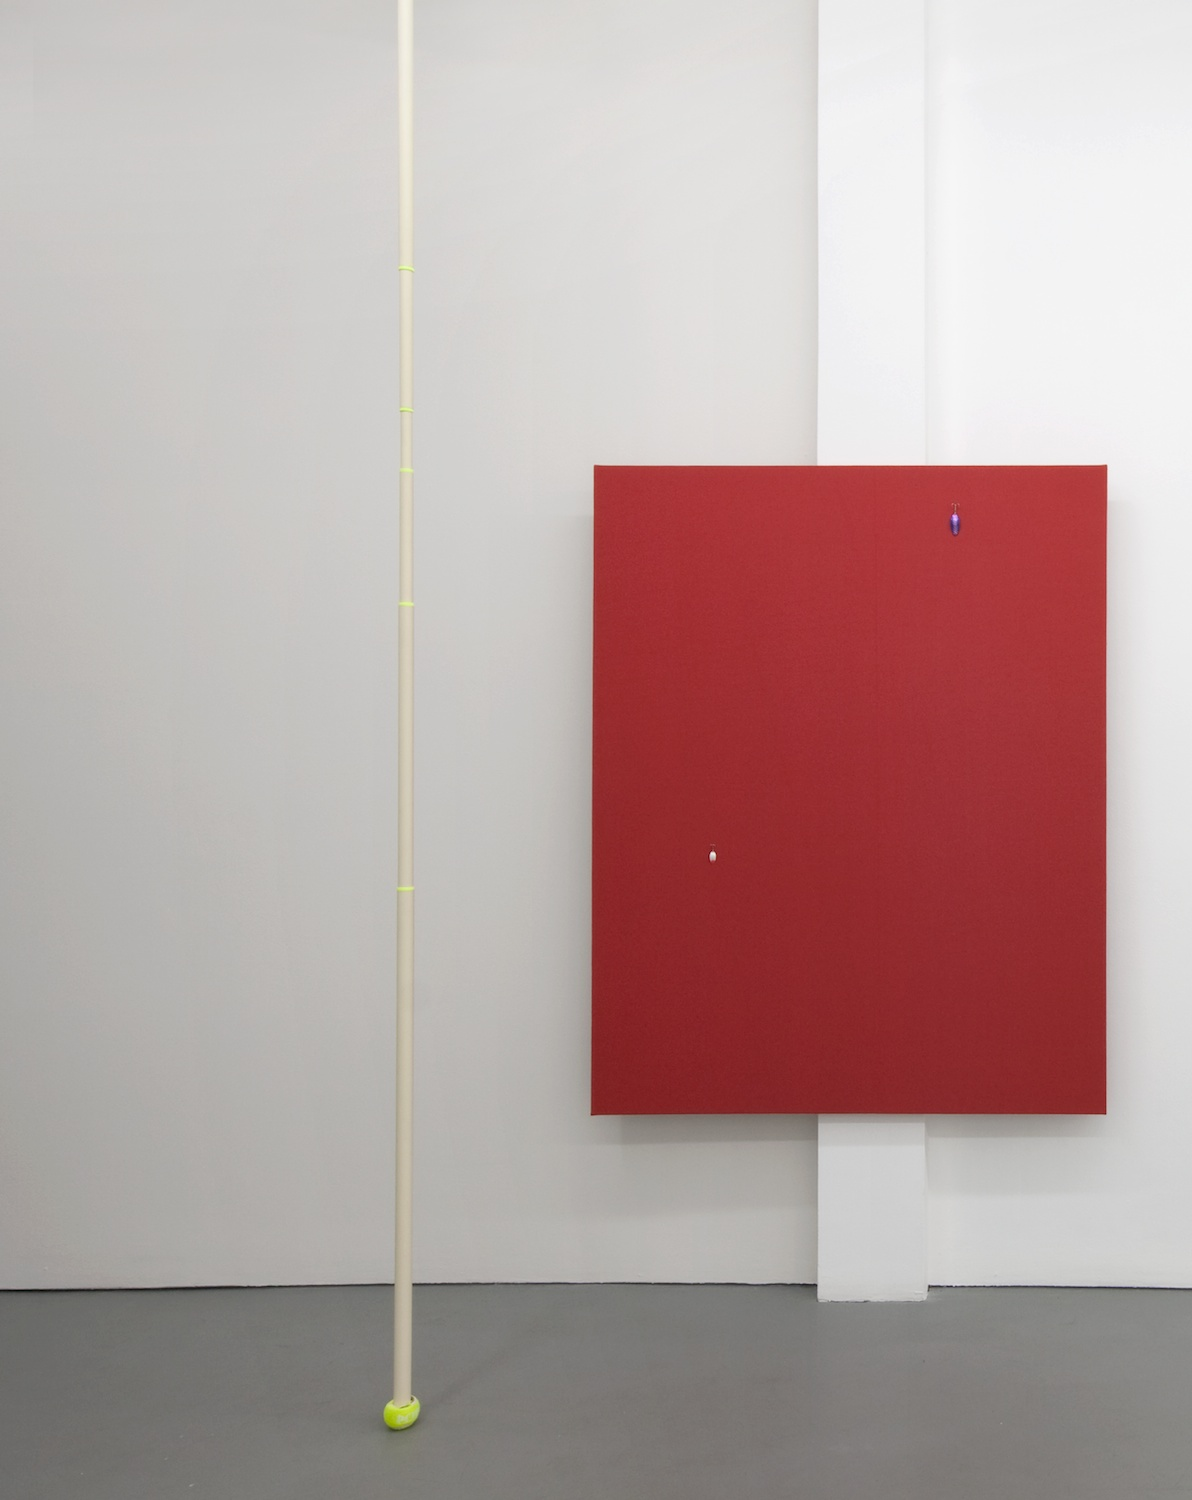 Paul Cowan  Untitled  2012 Bergamot oil in latex paint on wall Dimensions variable PC014